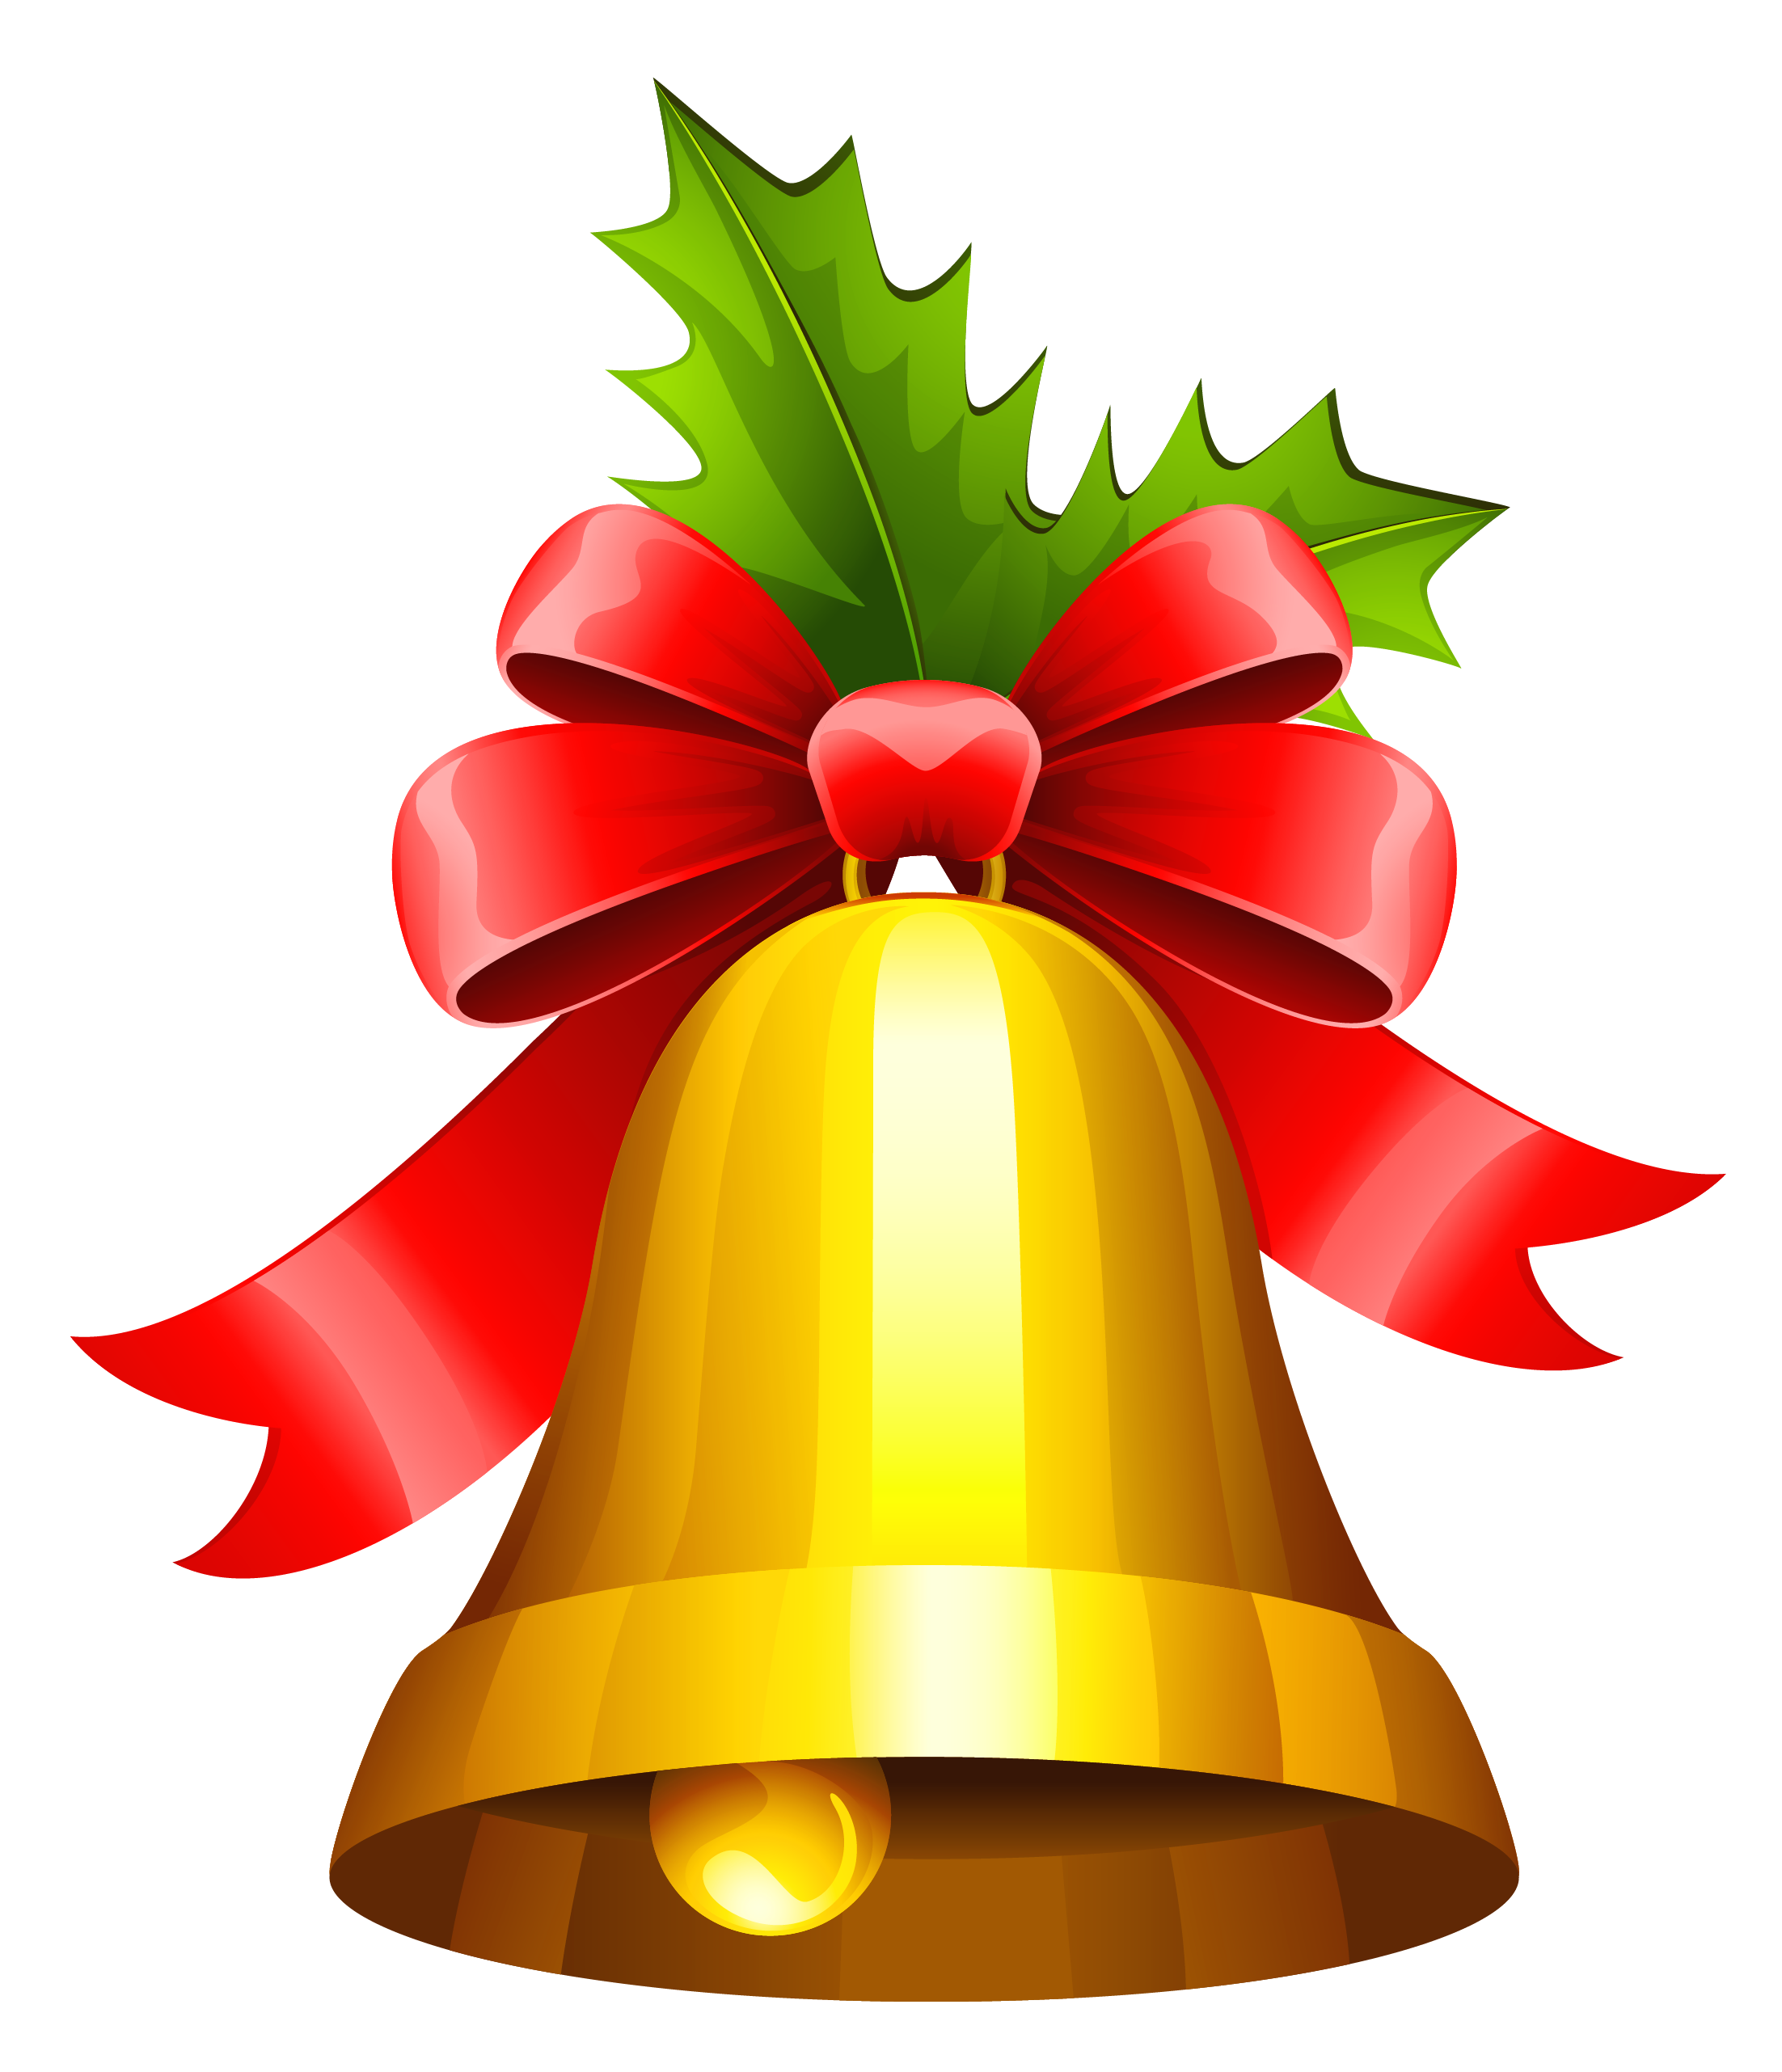 Bell photo png no background. Image